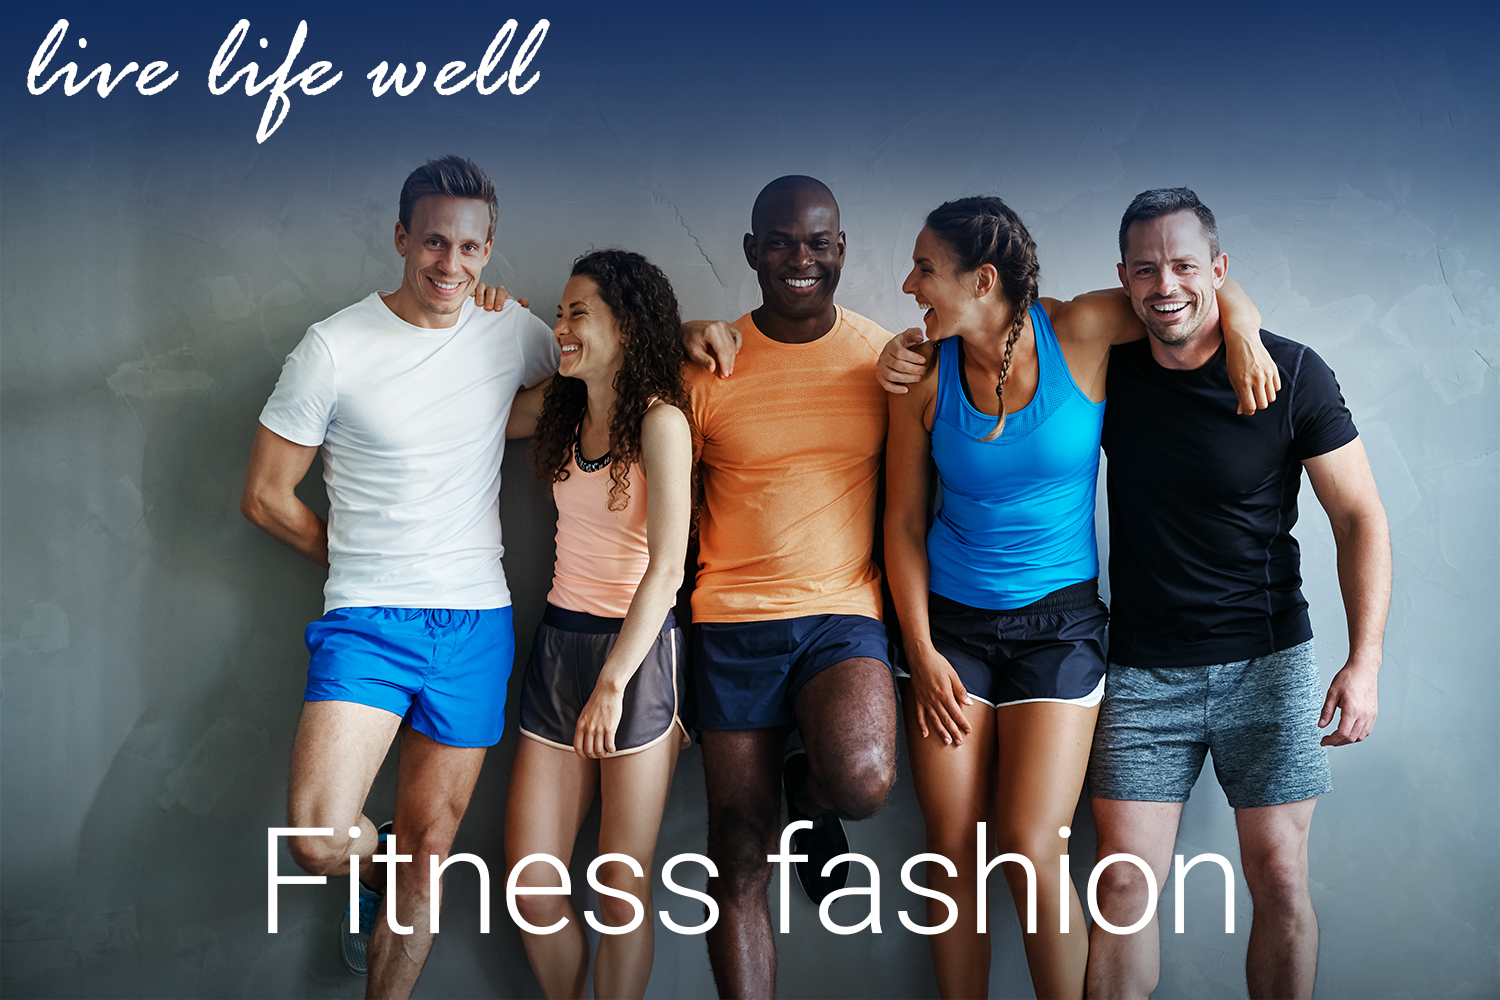 Discounts on fitness fashion